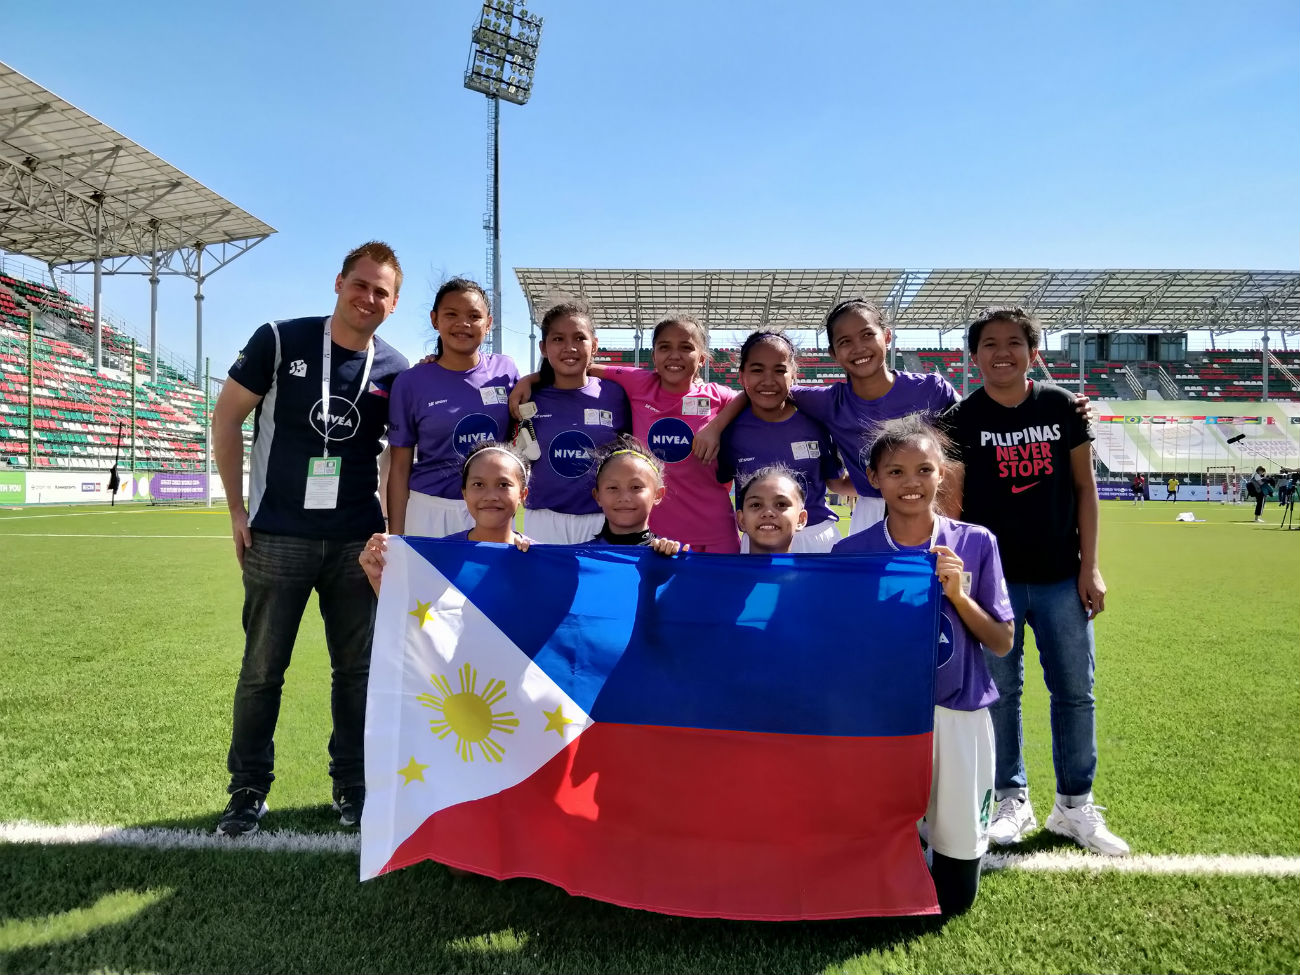 GALLANT STAND. Team Payatas-Philippines finishes 4th in the Street Child World Cup in Moscow, Russia. Photo from Team Philippines Street Child World Cup's Facebook page